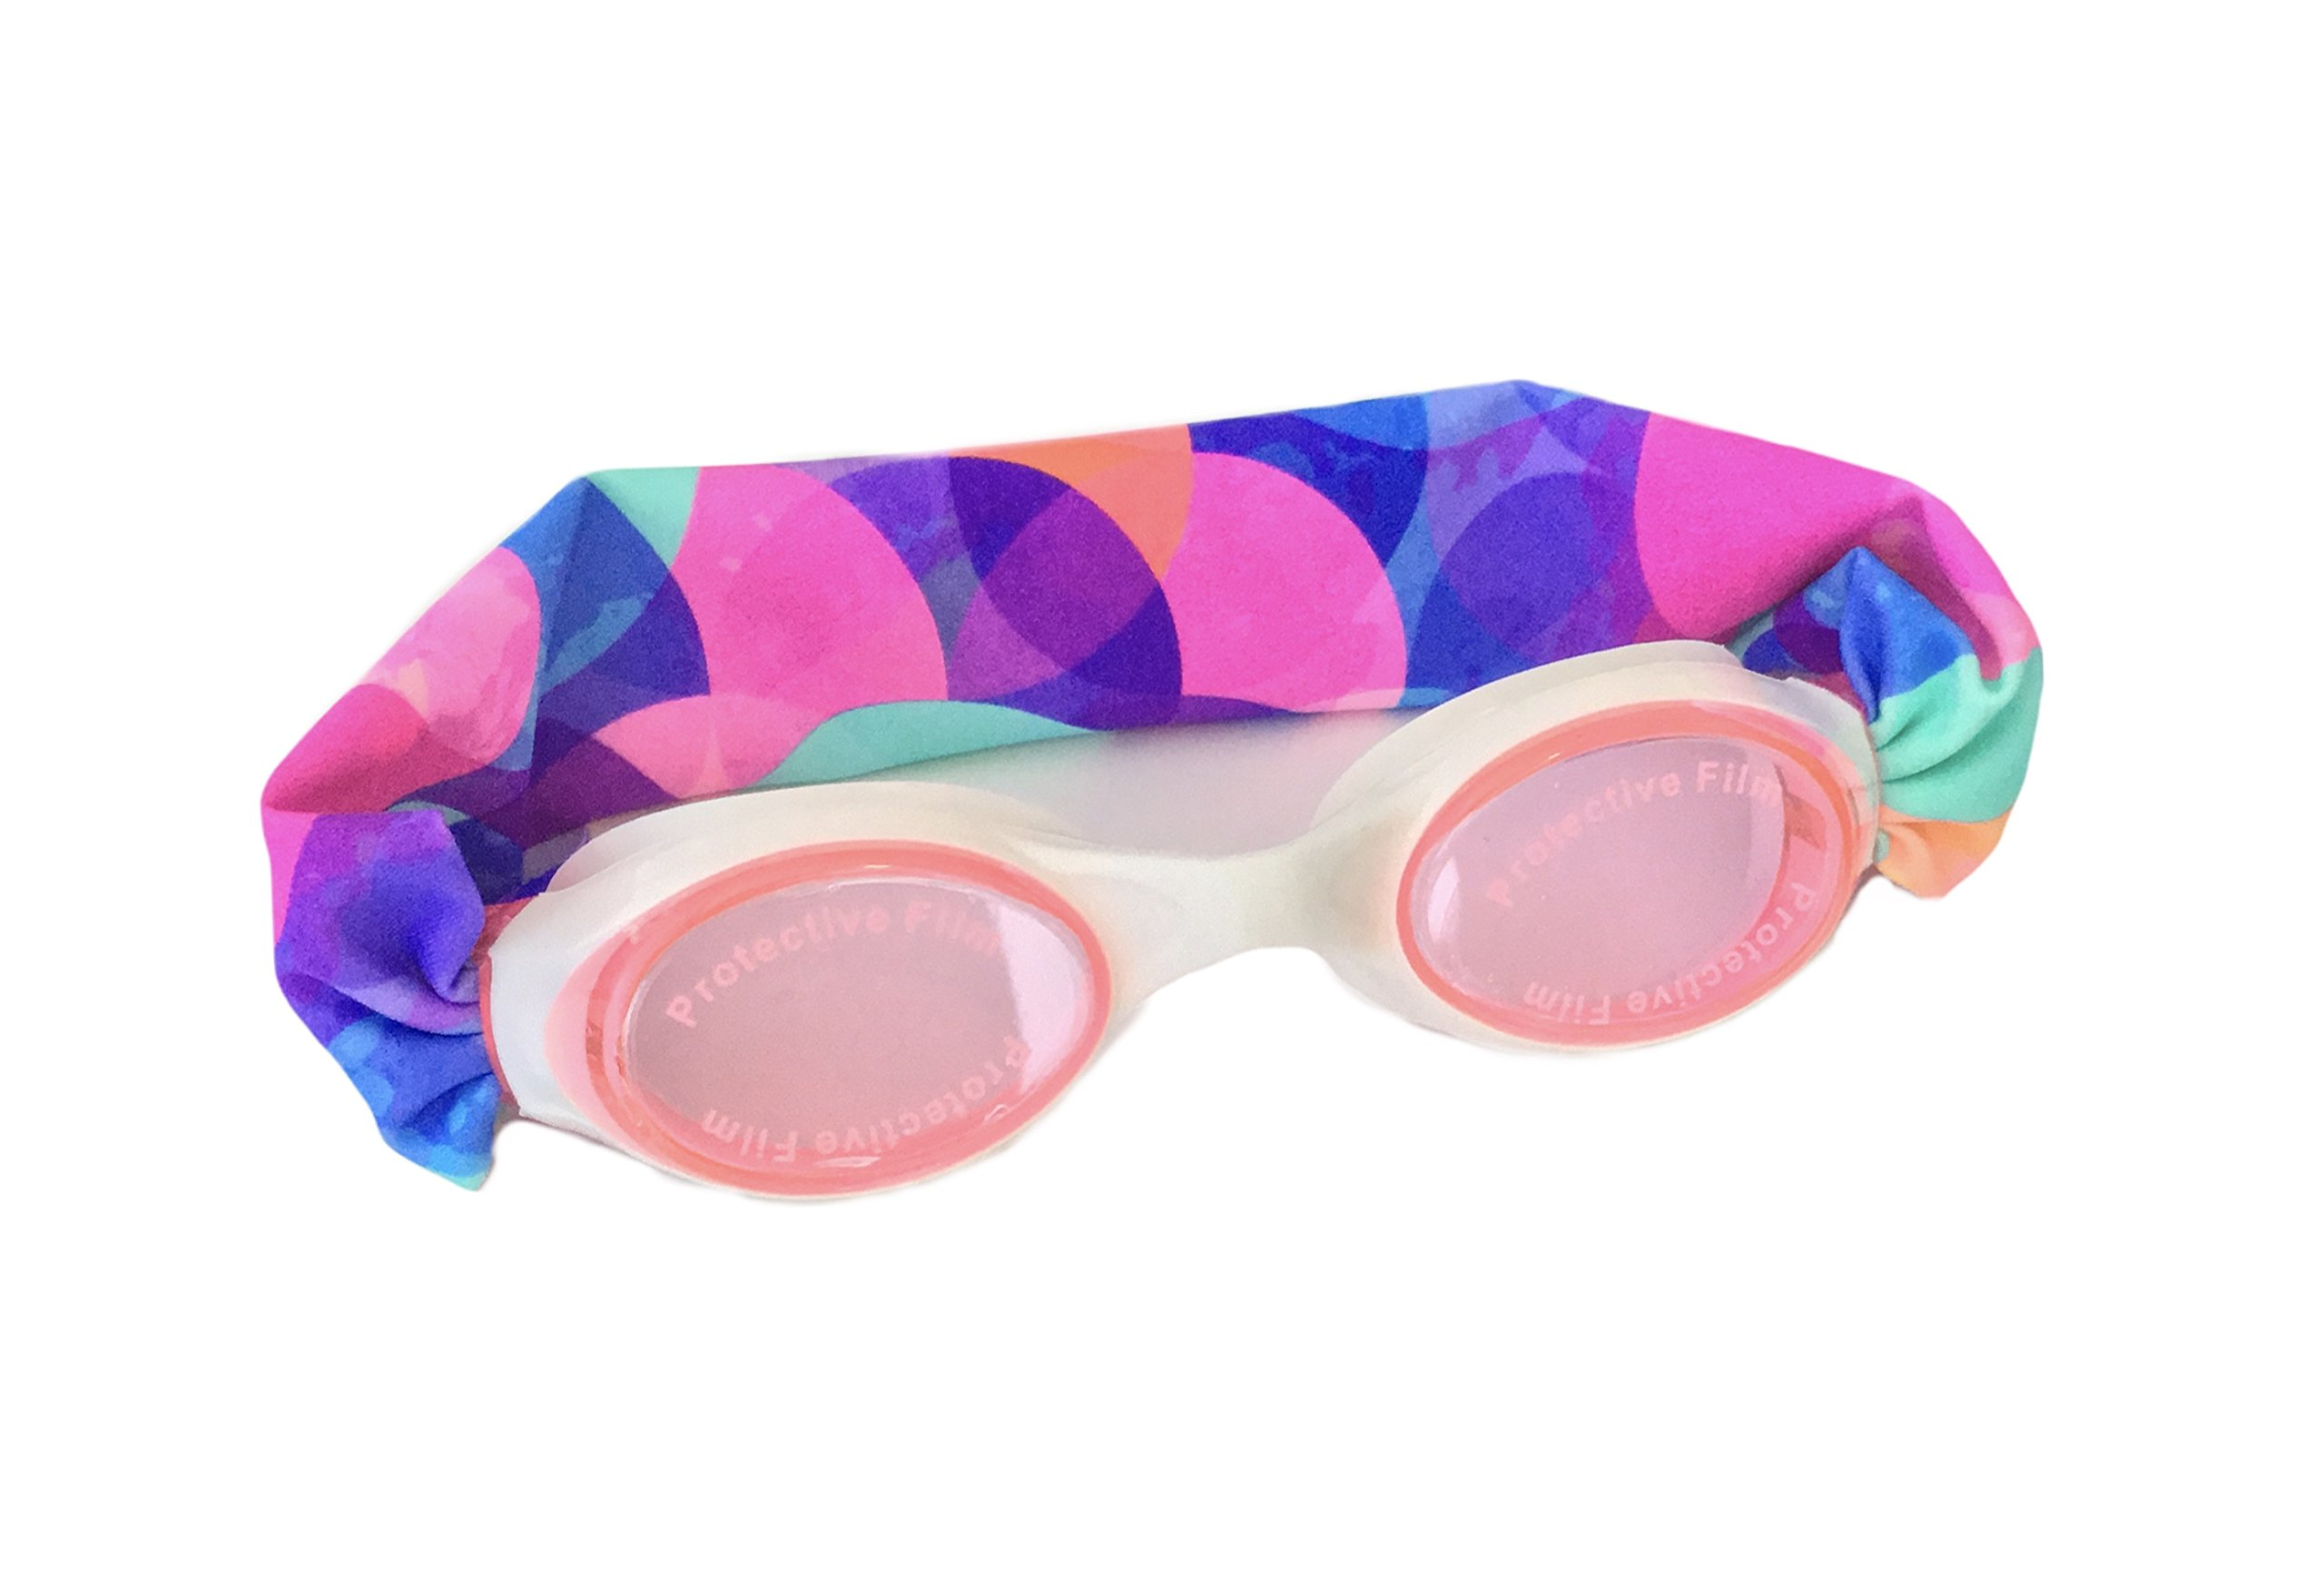 Splash Bubbles Swim Goggles - Comfortable, Fashionable, Fun - Fits Kids & Adults - Won't Pull Your Hair - Easy to Use - High Visibility Anti-Fog Lenses - Patent Pending